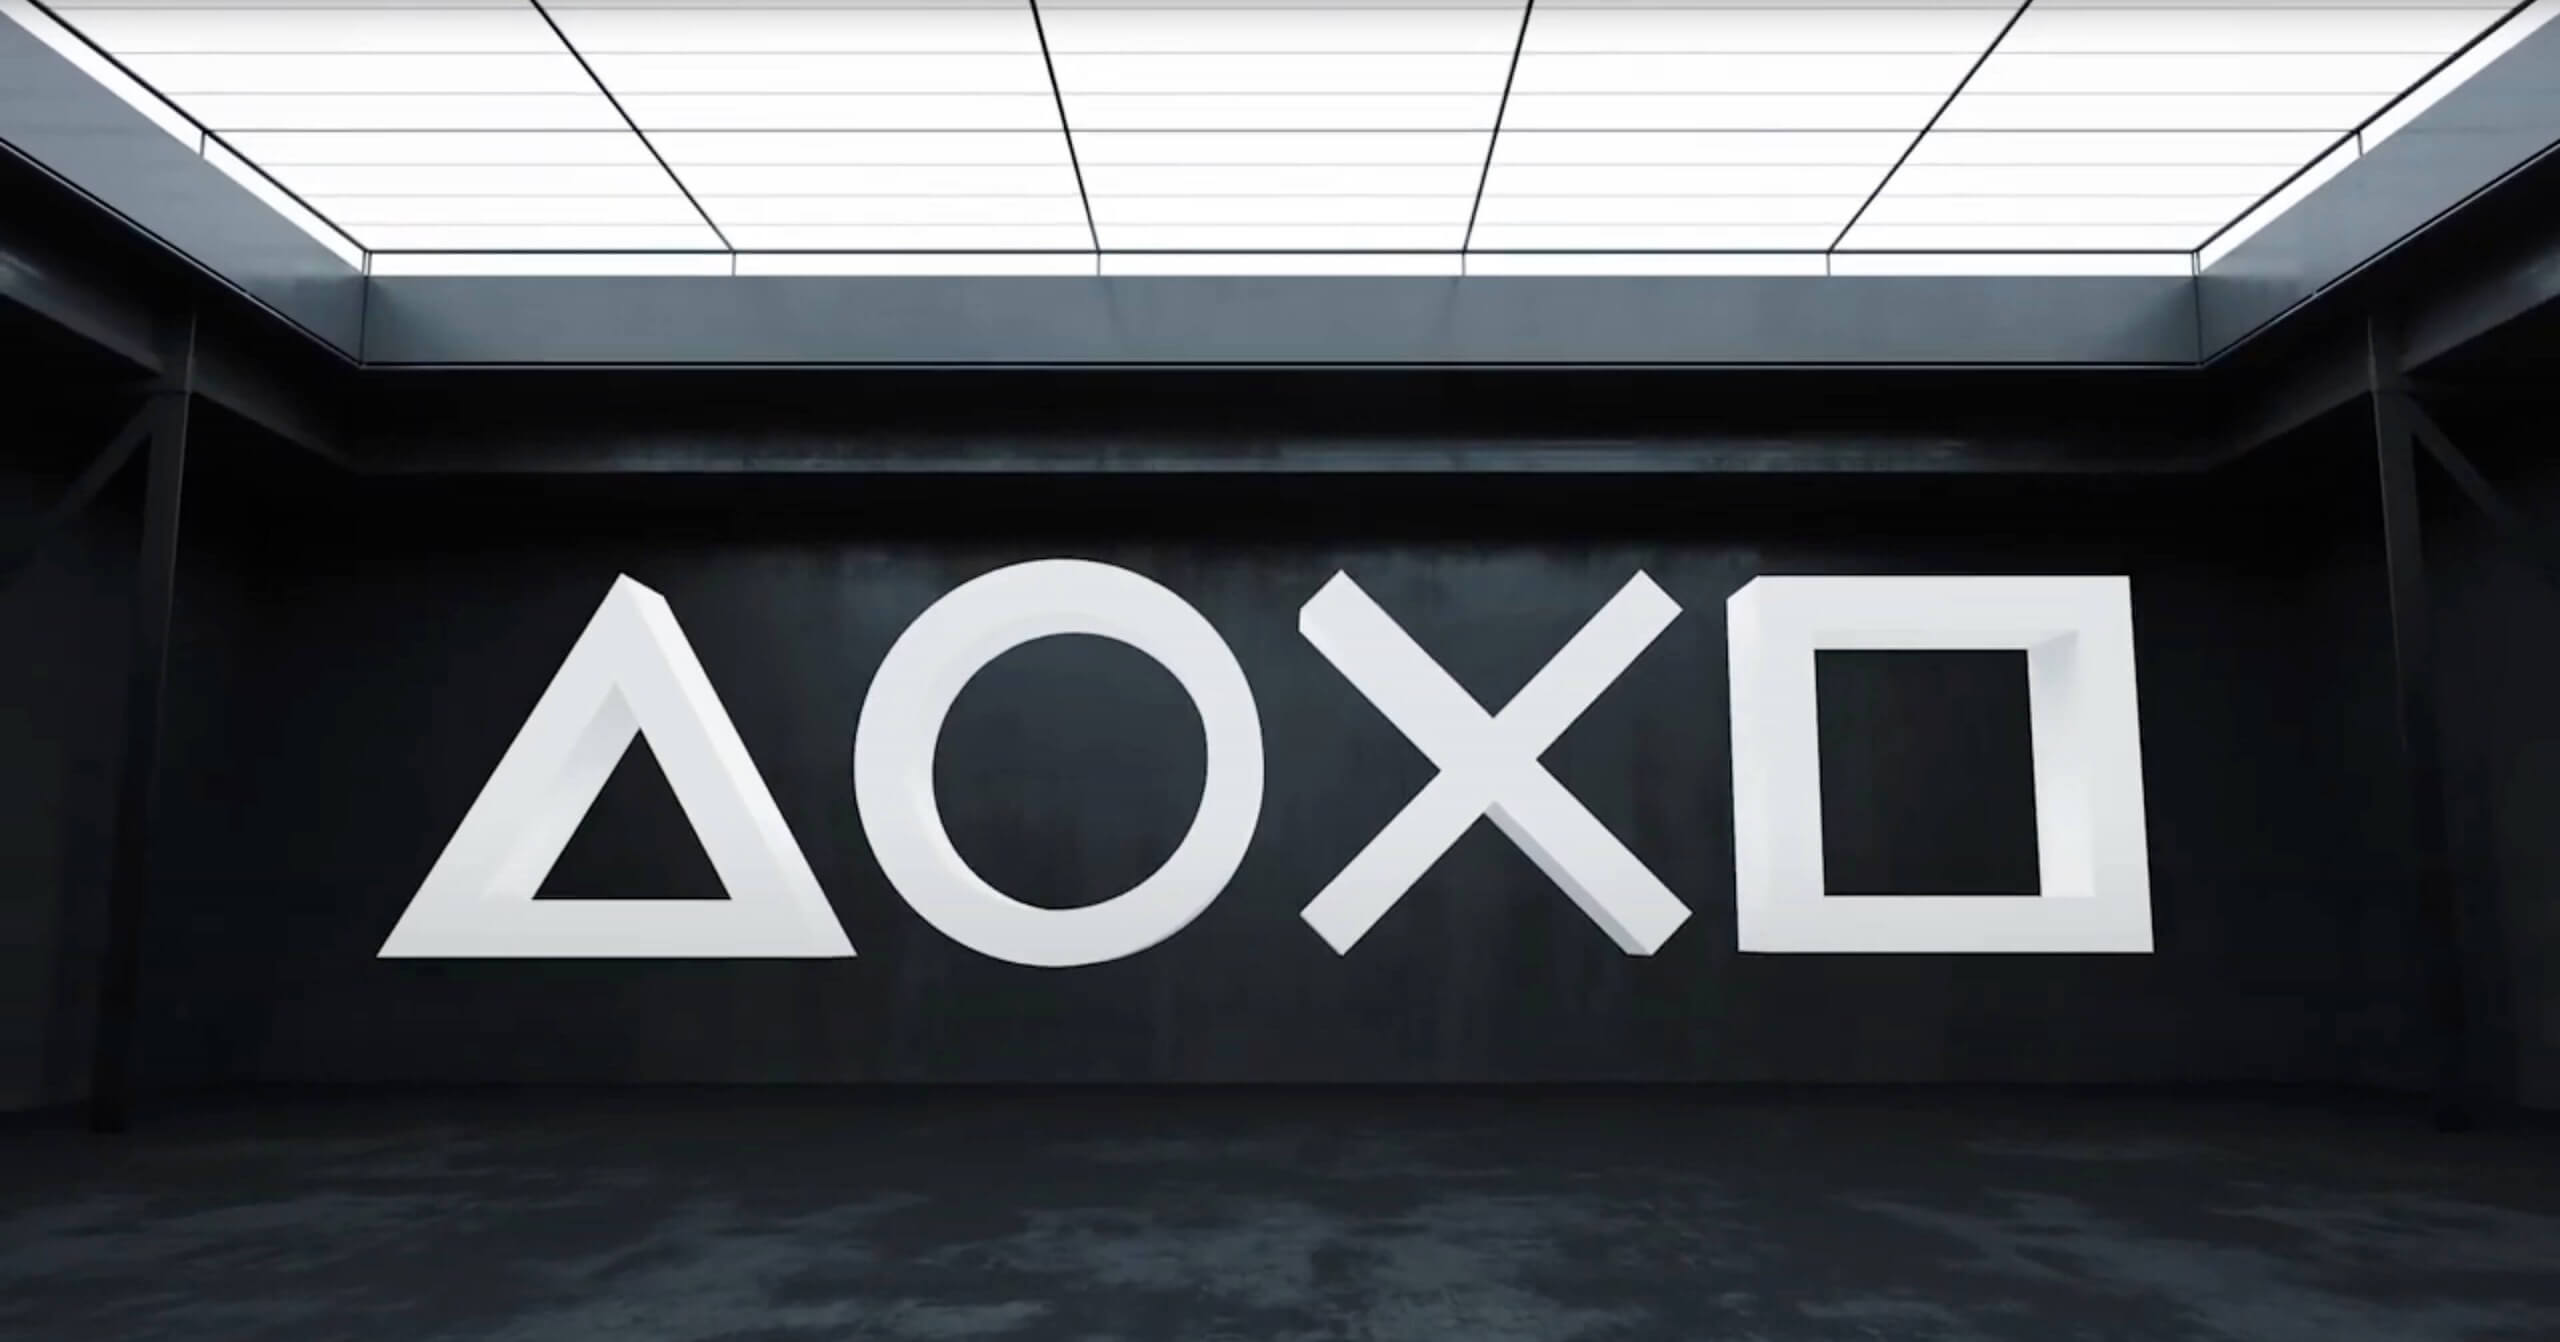 Here are all the PlayStation 5 launch titles we know of so far